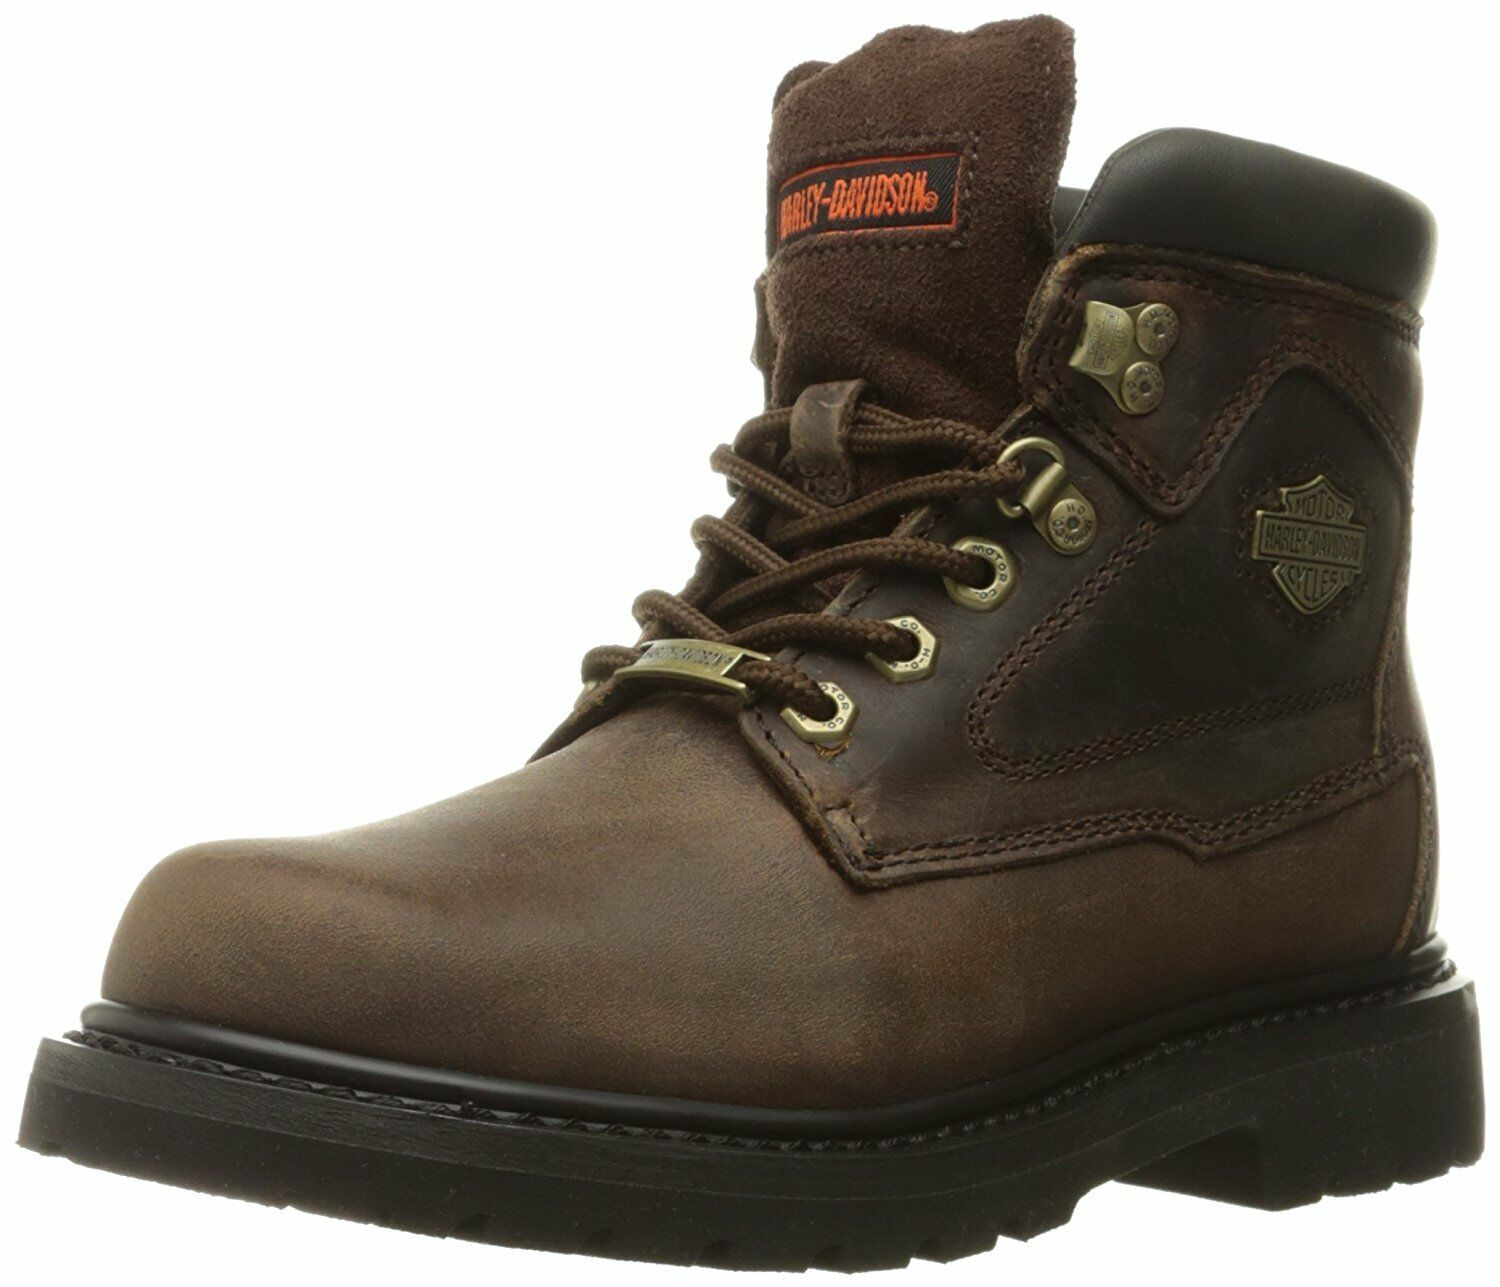 Harley-Davidson Women's Bayport Brown Motorcycle Work Boots Boots Boots Full Grain Leather 5f7c69